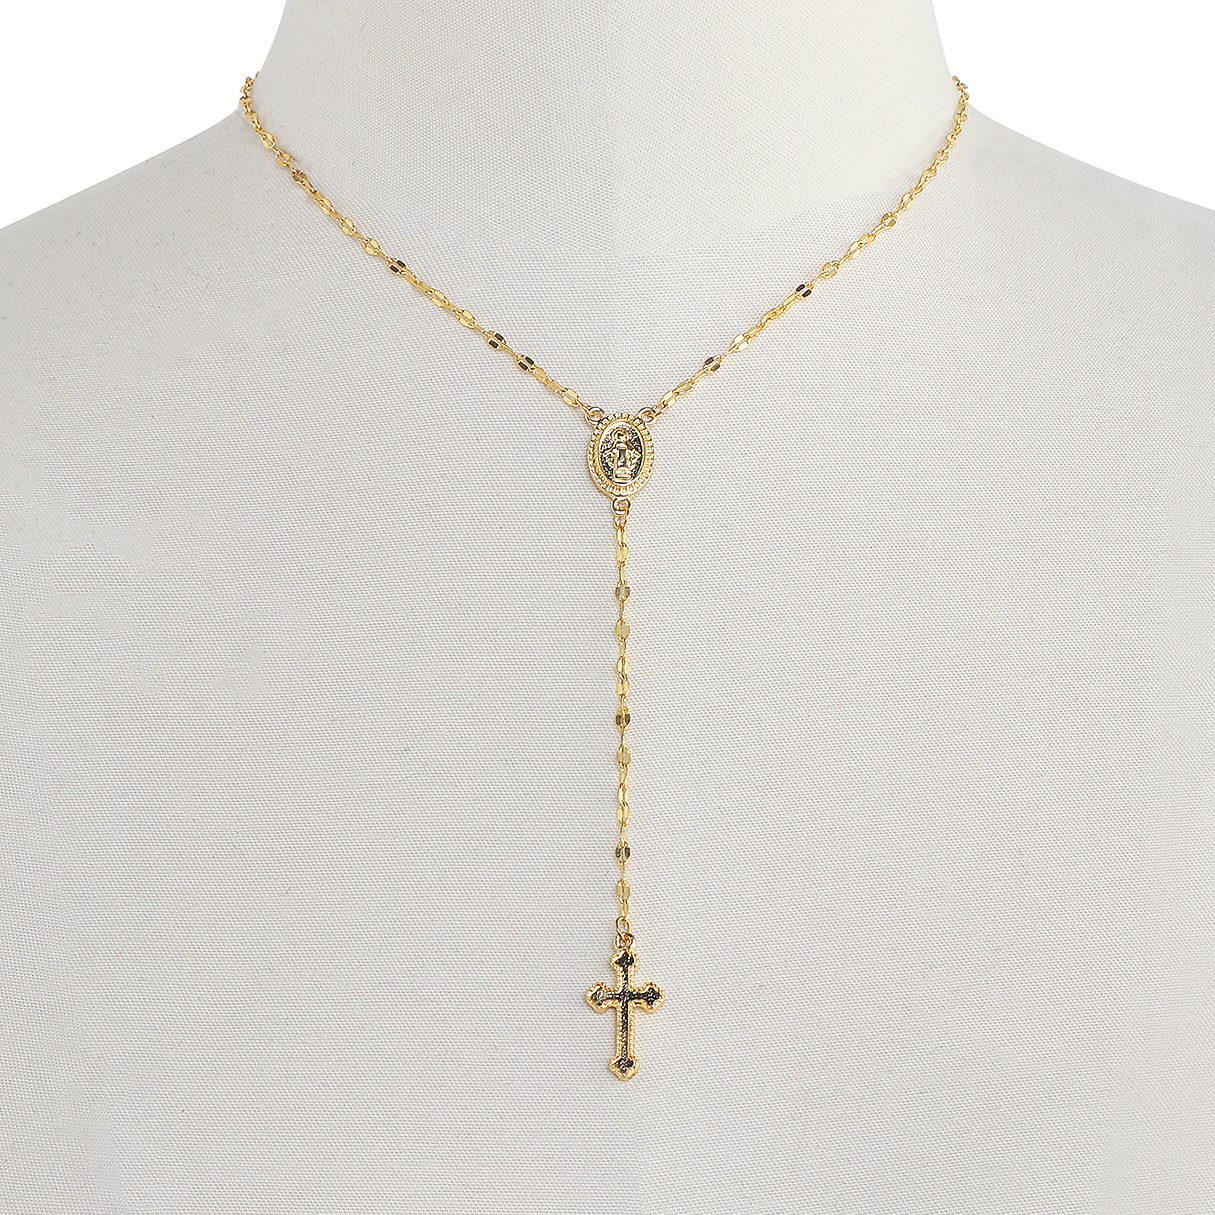 Gold Alloy Crucifix  Pendant Necklace